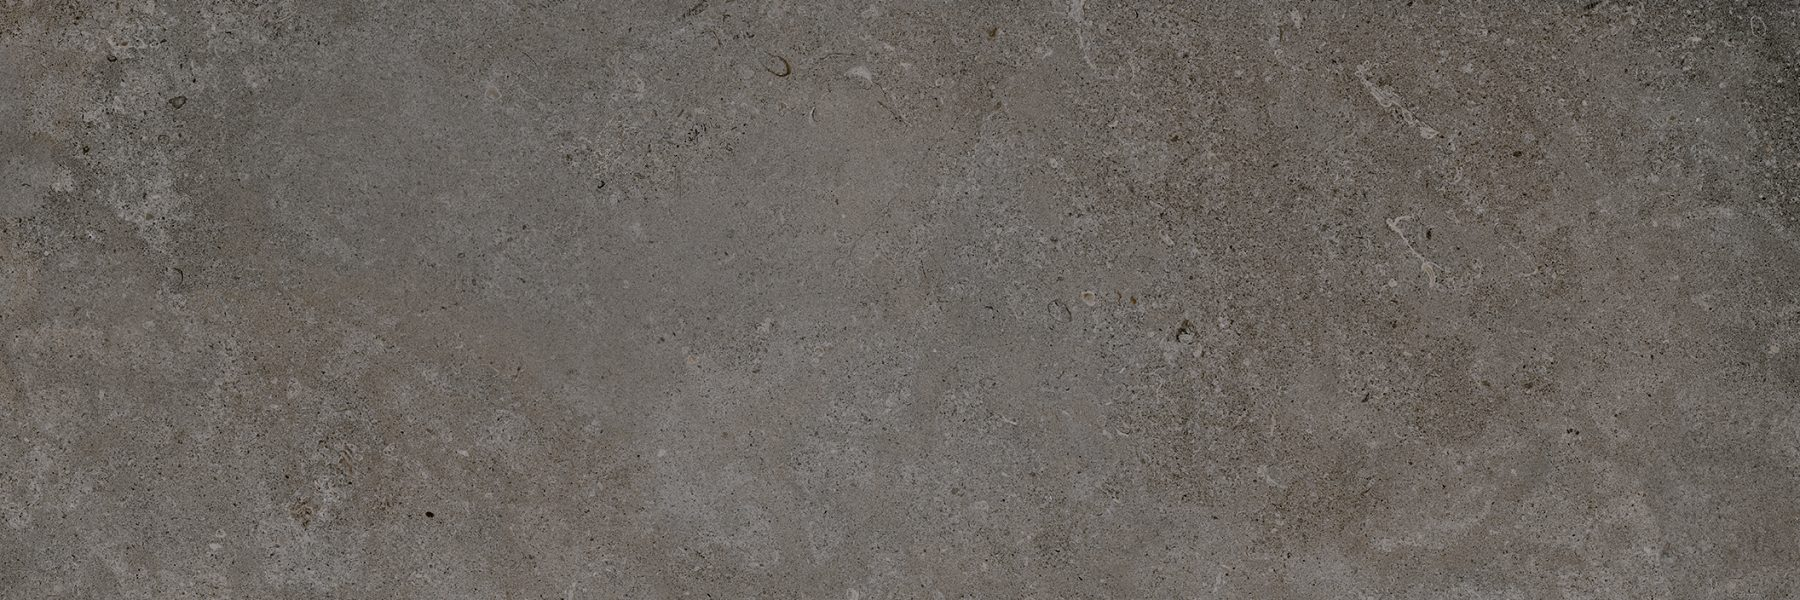 Porcelanosa Mosa-River Grey Tile 59.6 x 180 cm